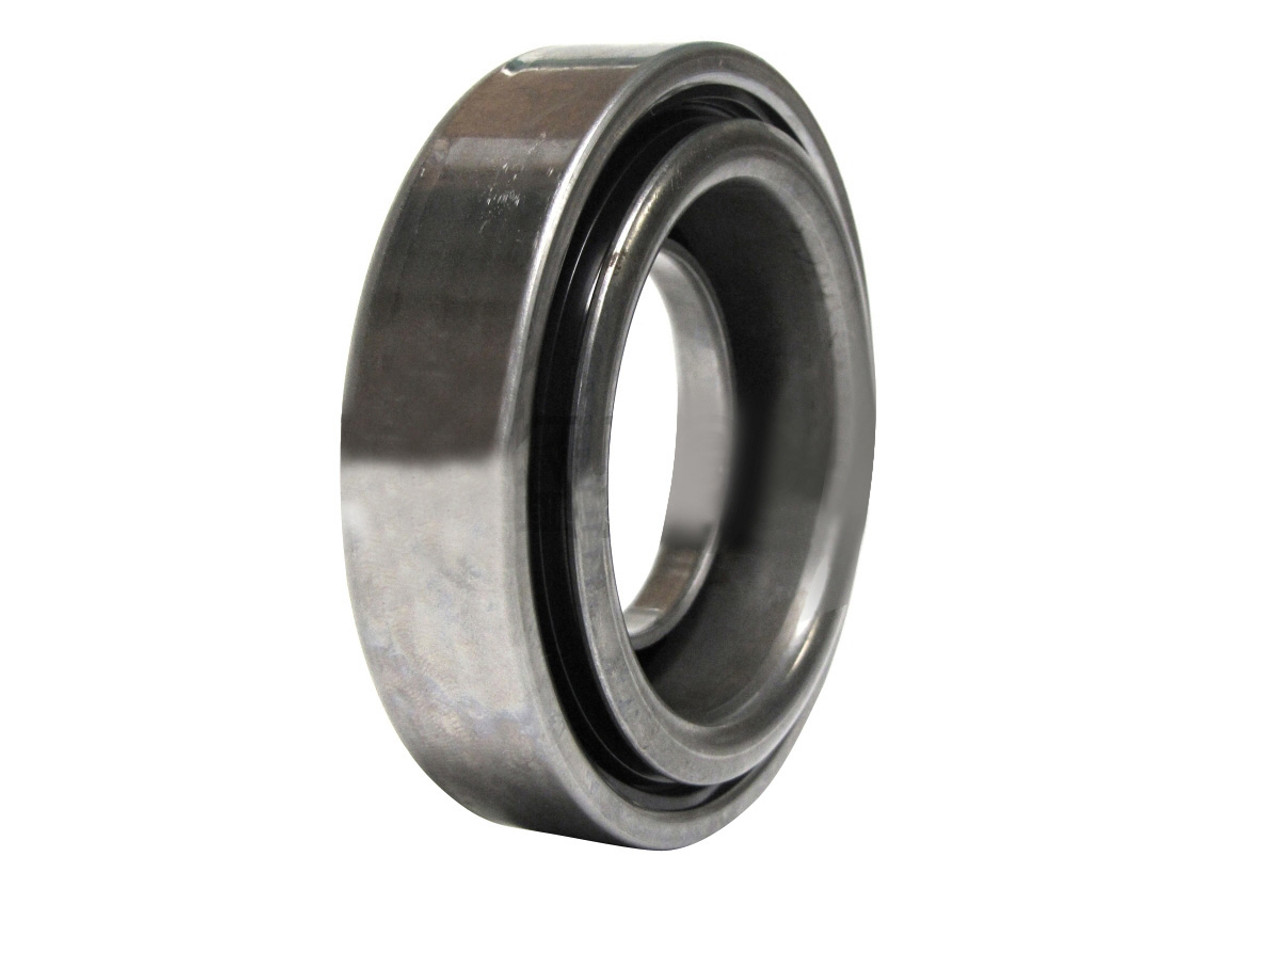 Throw Out Bearing >> Oem Throw Out Bearing For Nissan Sr20det